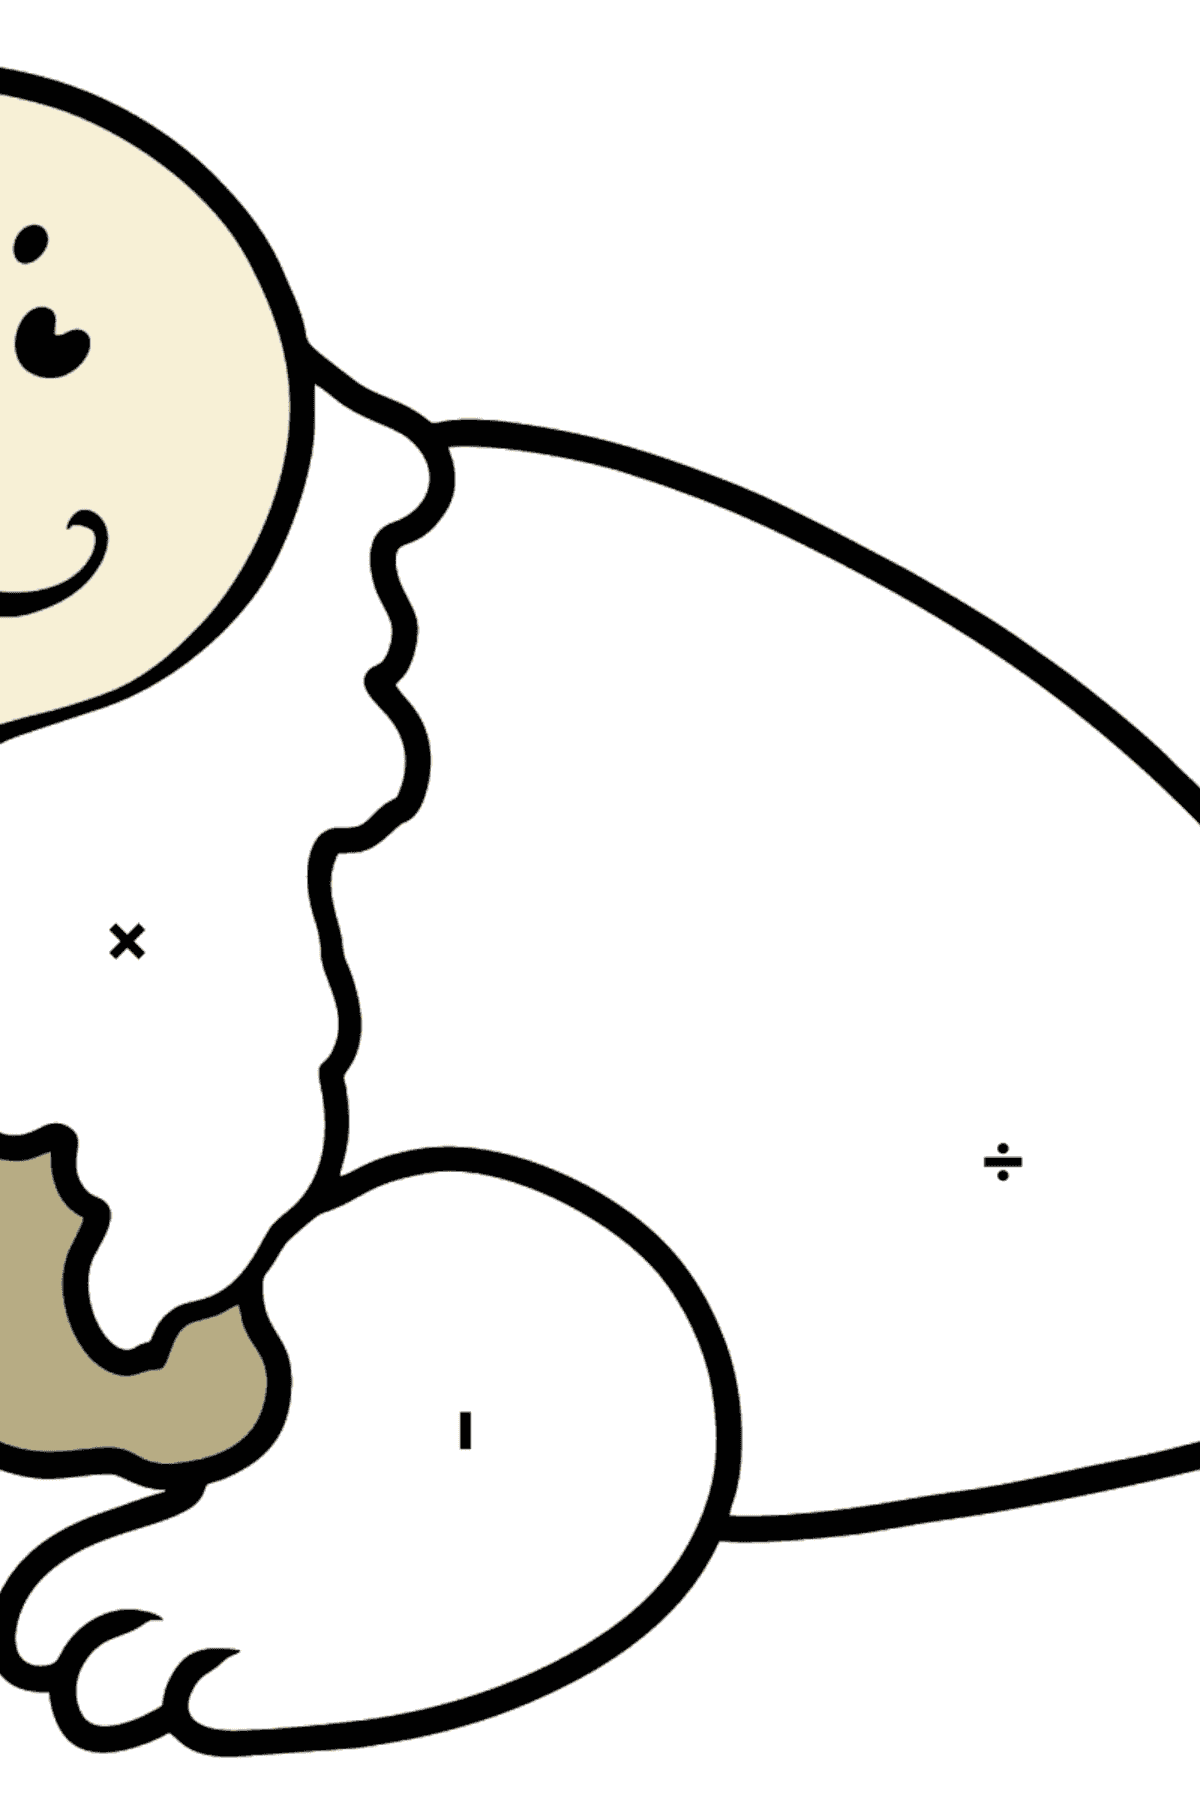 Seal coloring page - Coloring by Symbols for Kids